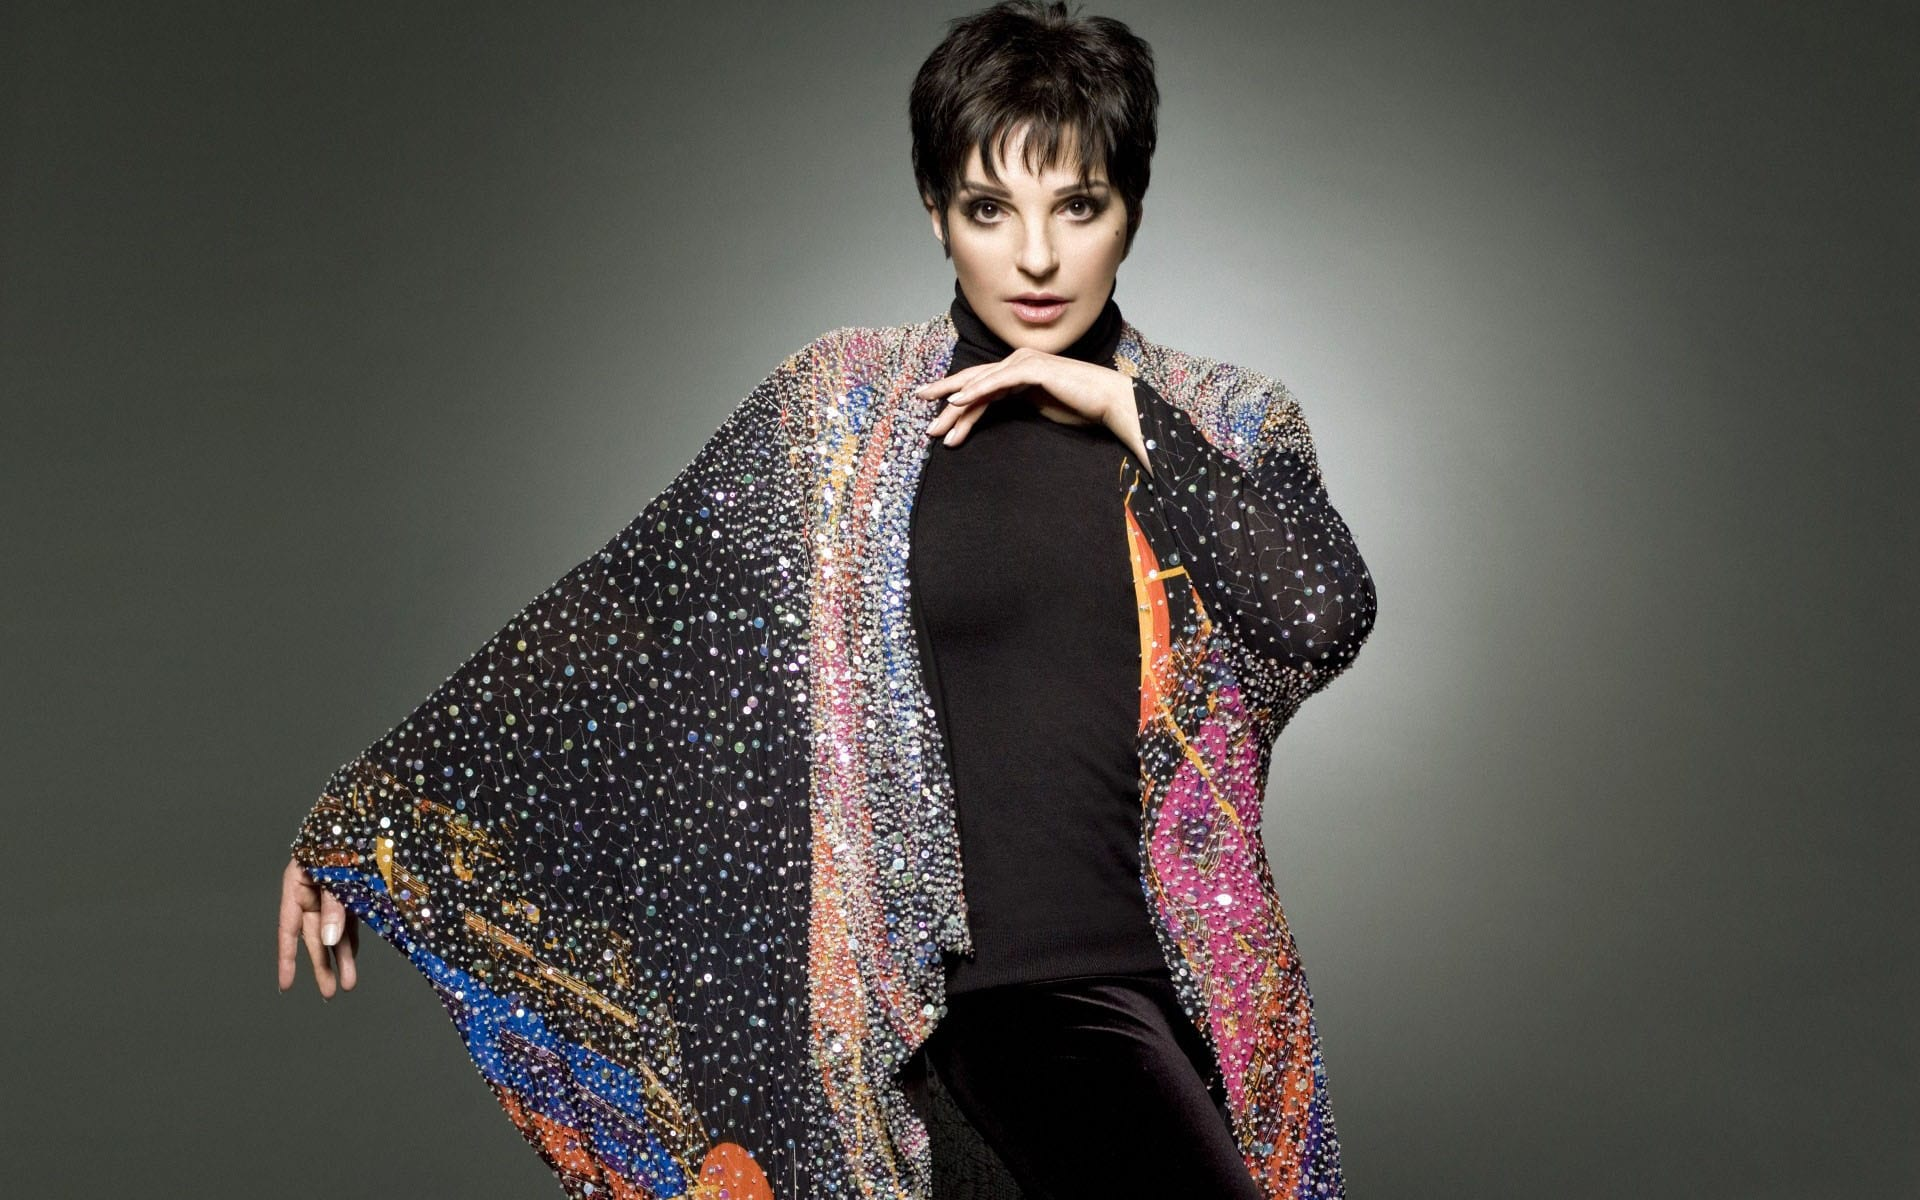 Liza Minnelli HQ wallpapers